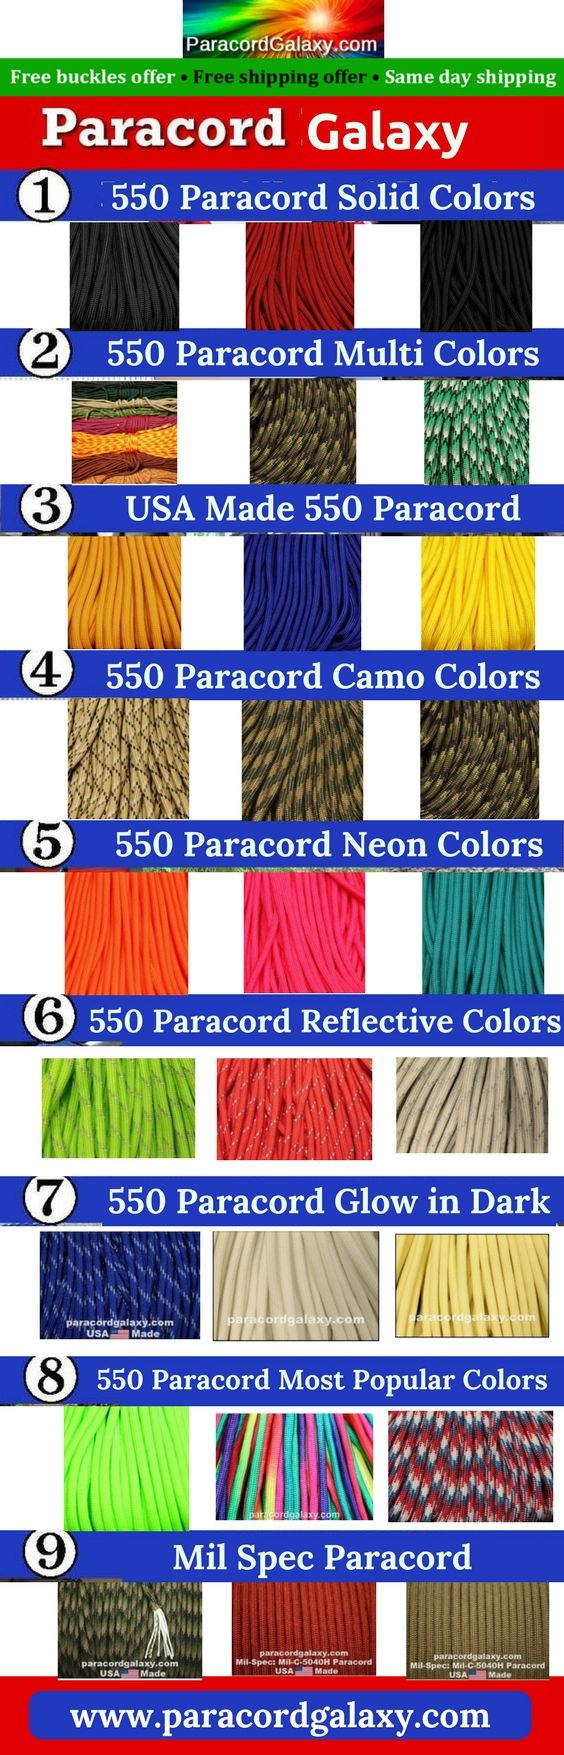 Paracord Galaxy is the best place to shop paracord online! All types of paracords are available with wide variety of length like 550 Paracord, Paracord Bracelets, Skull Beads, Buckles, Shackles and more.  #Paracord